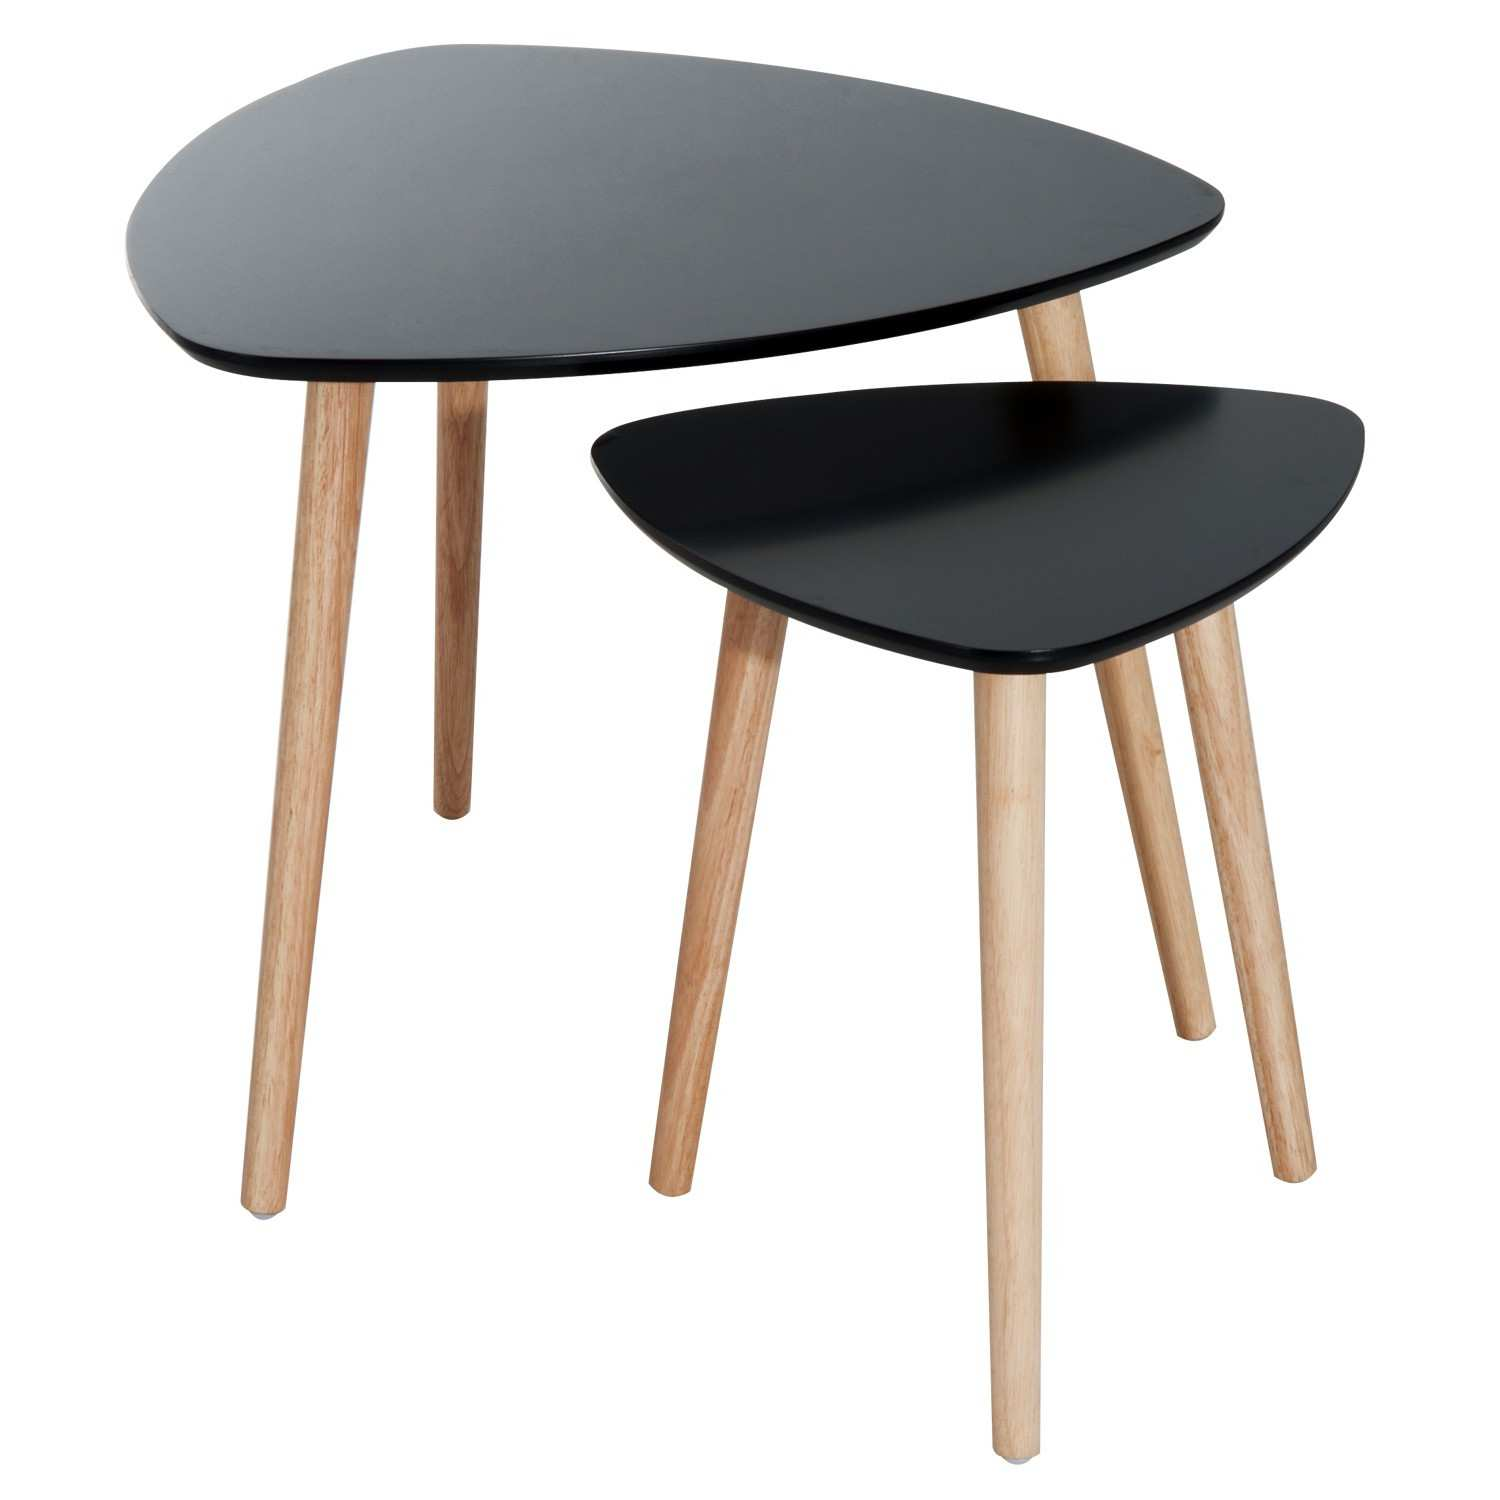 tures modern wood end tables table ideas simple for hom wooden danish retro nesting accent set dining chairs extra large coffee contemporary room furniture small oak college dorm